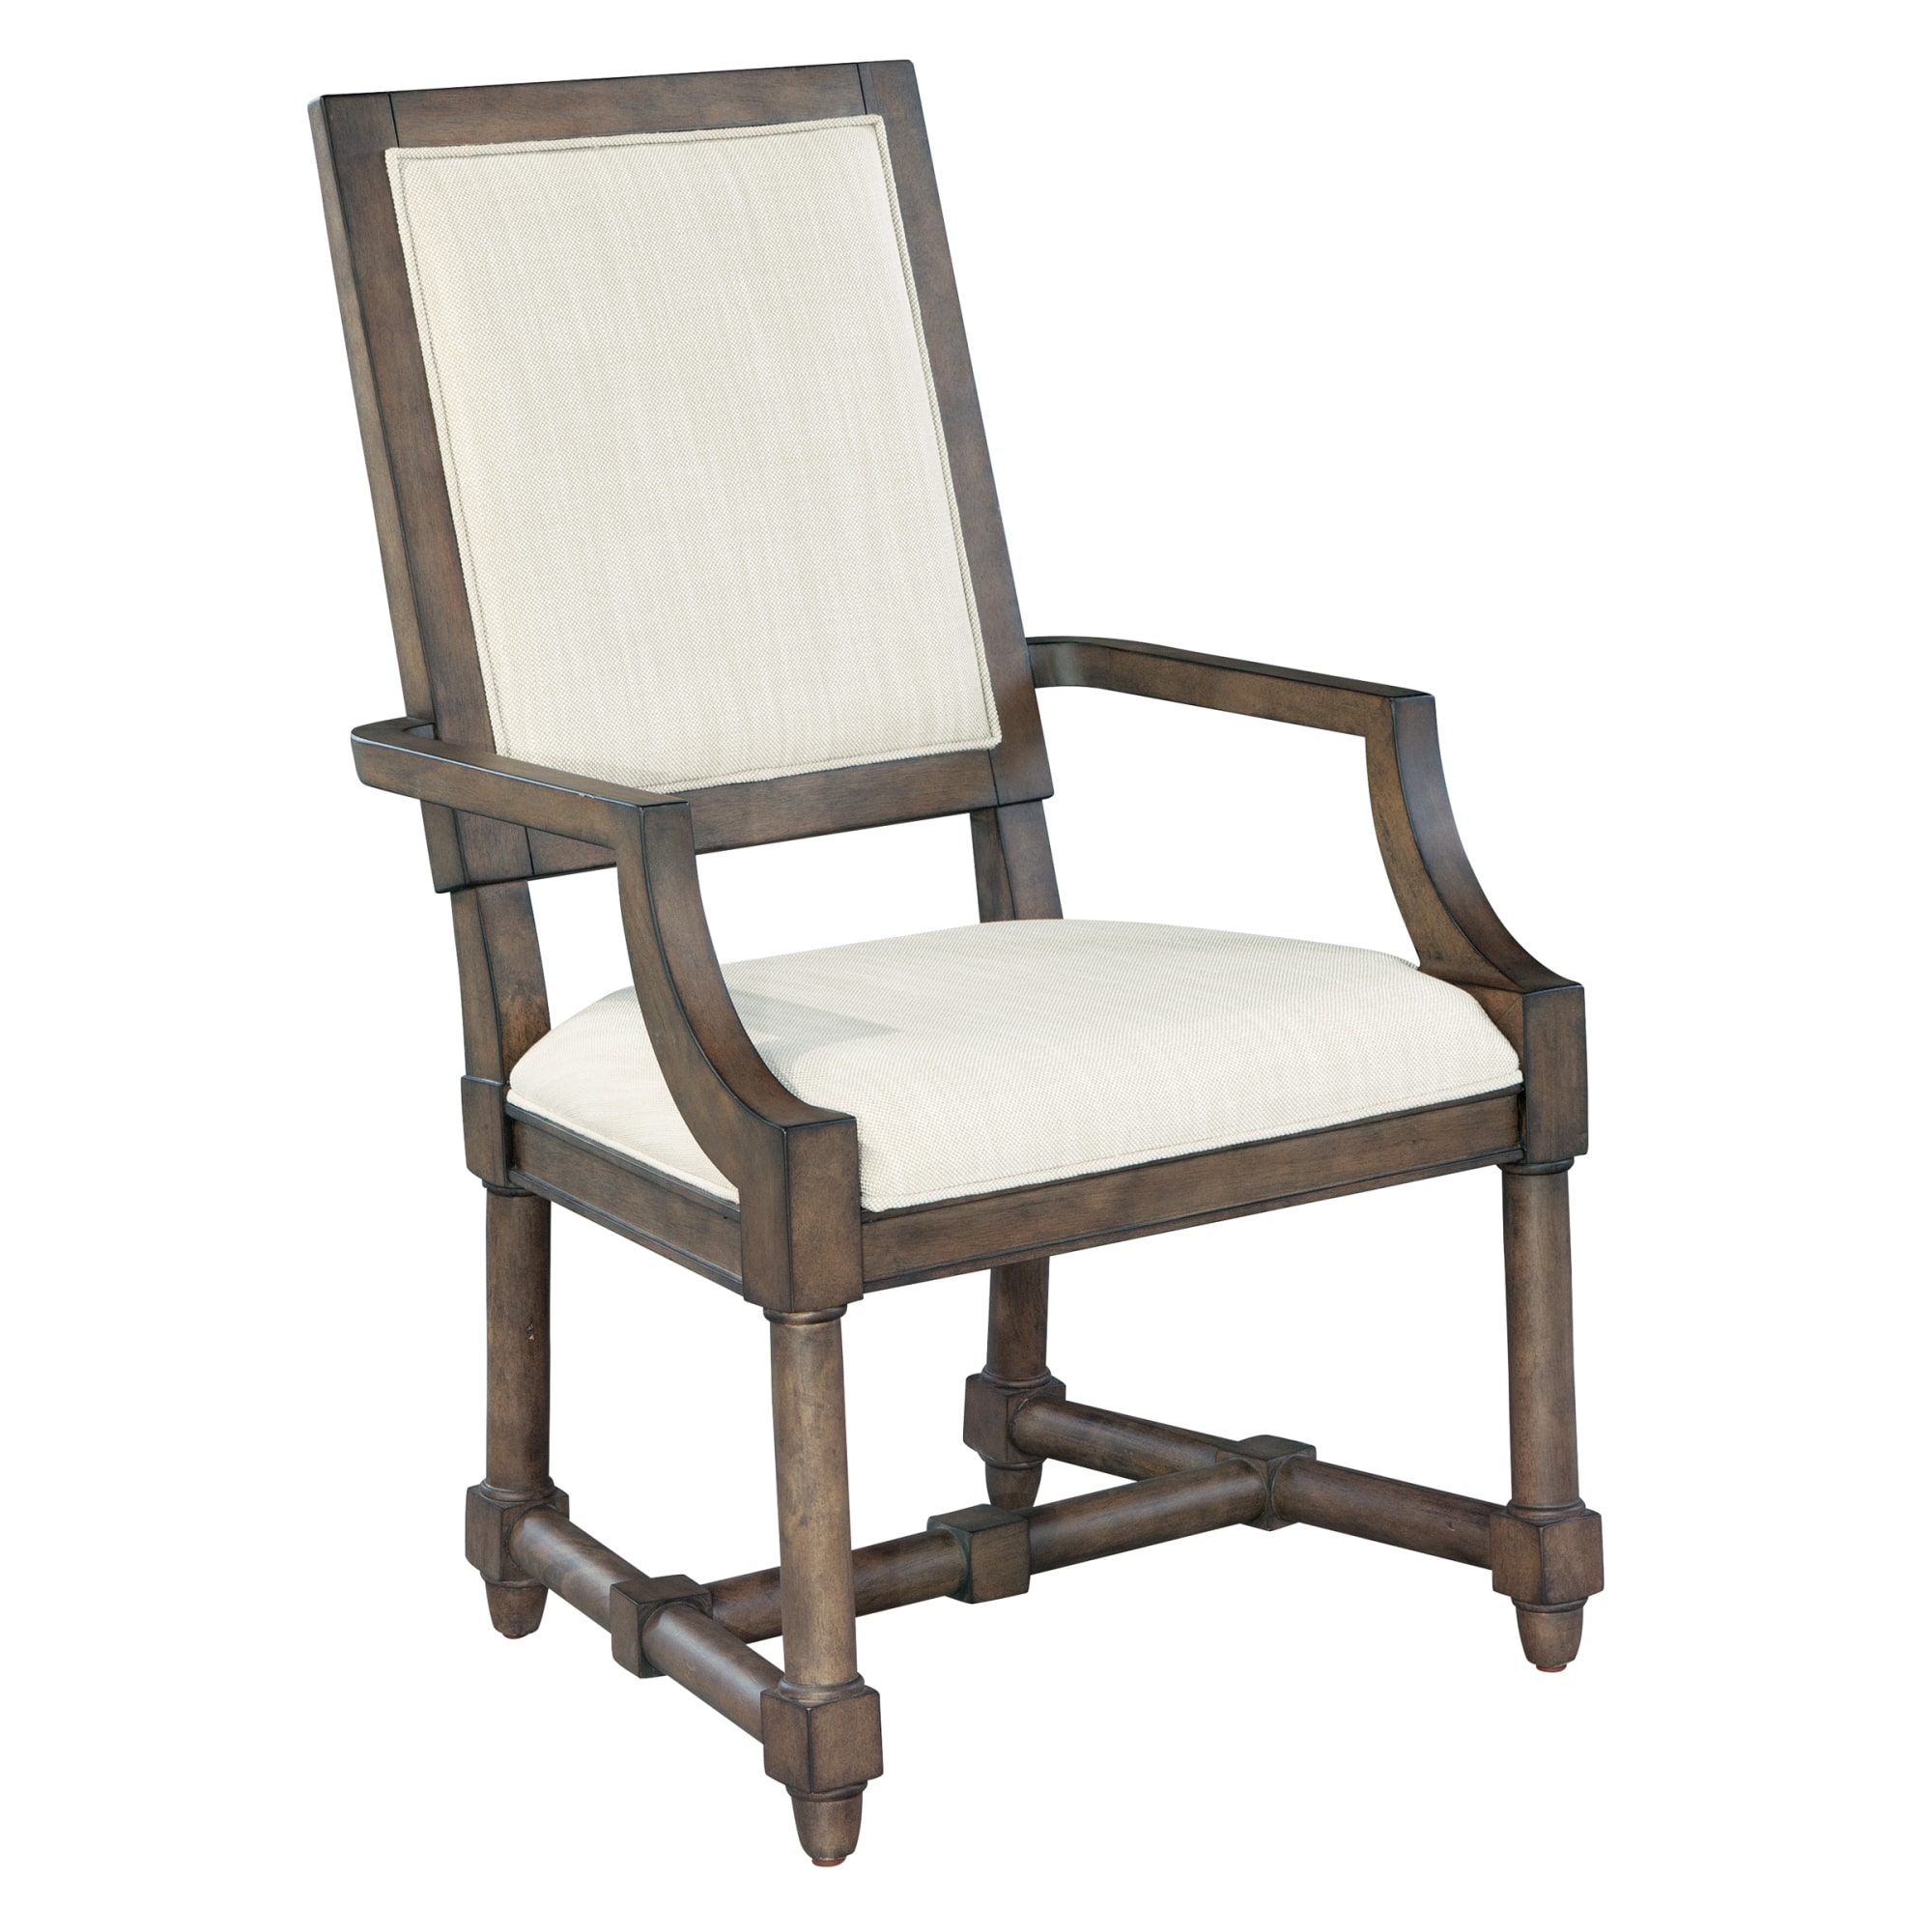 Image for 2-3522 Lincoln Park Upholstered Arm Chair from Hekman Official Website